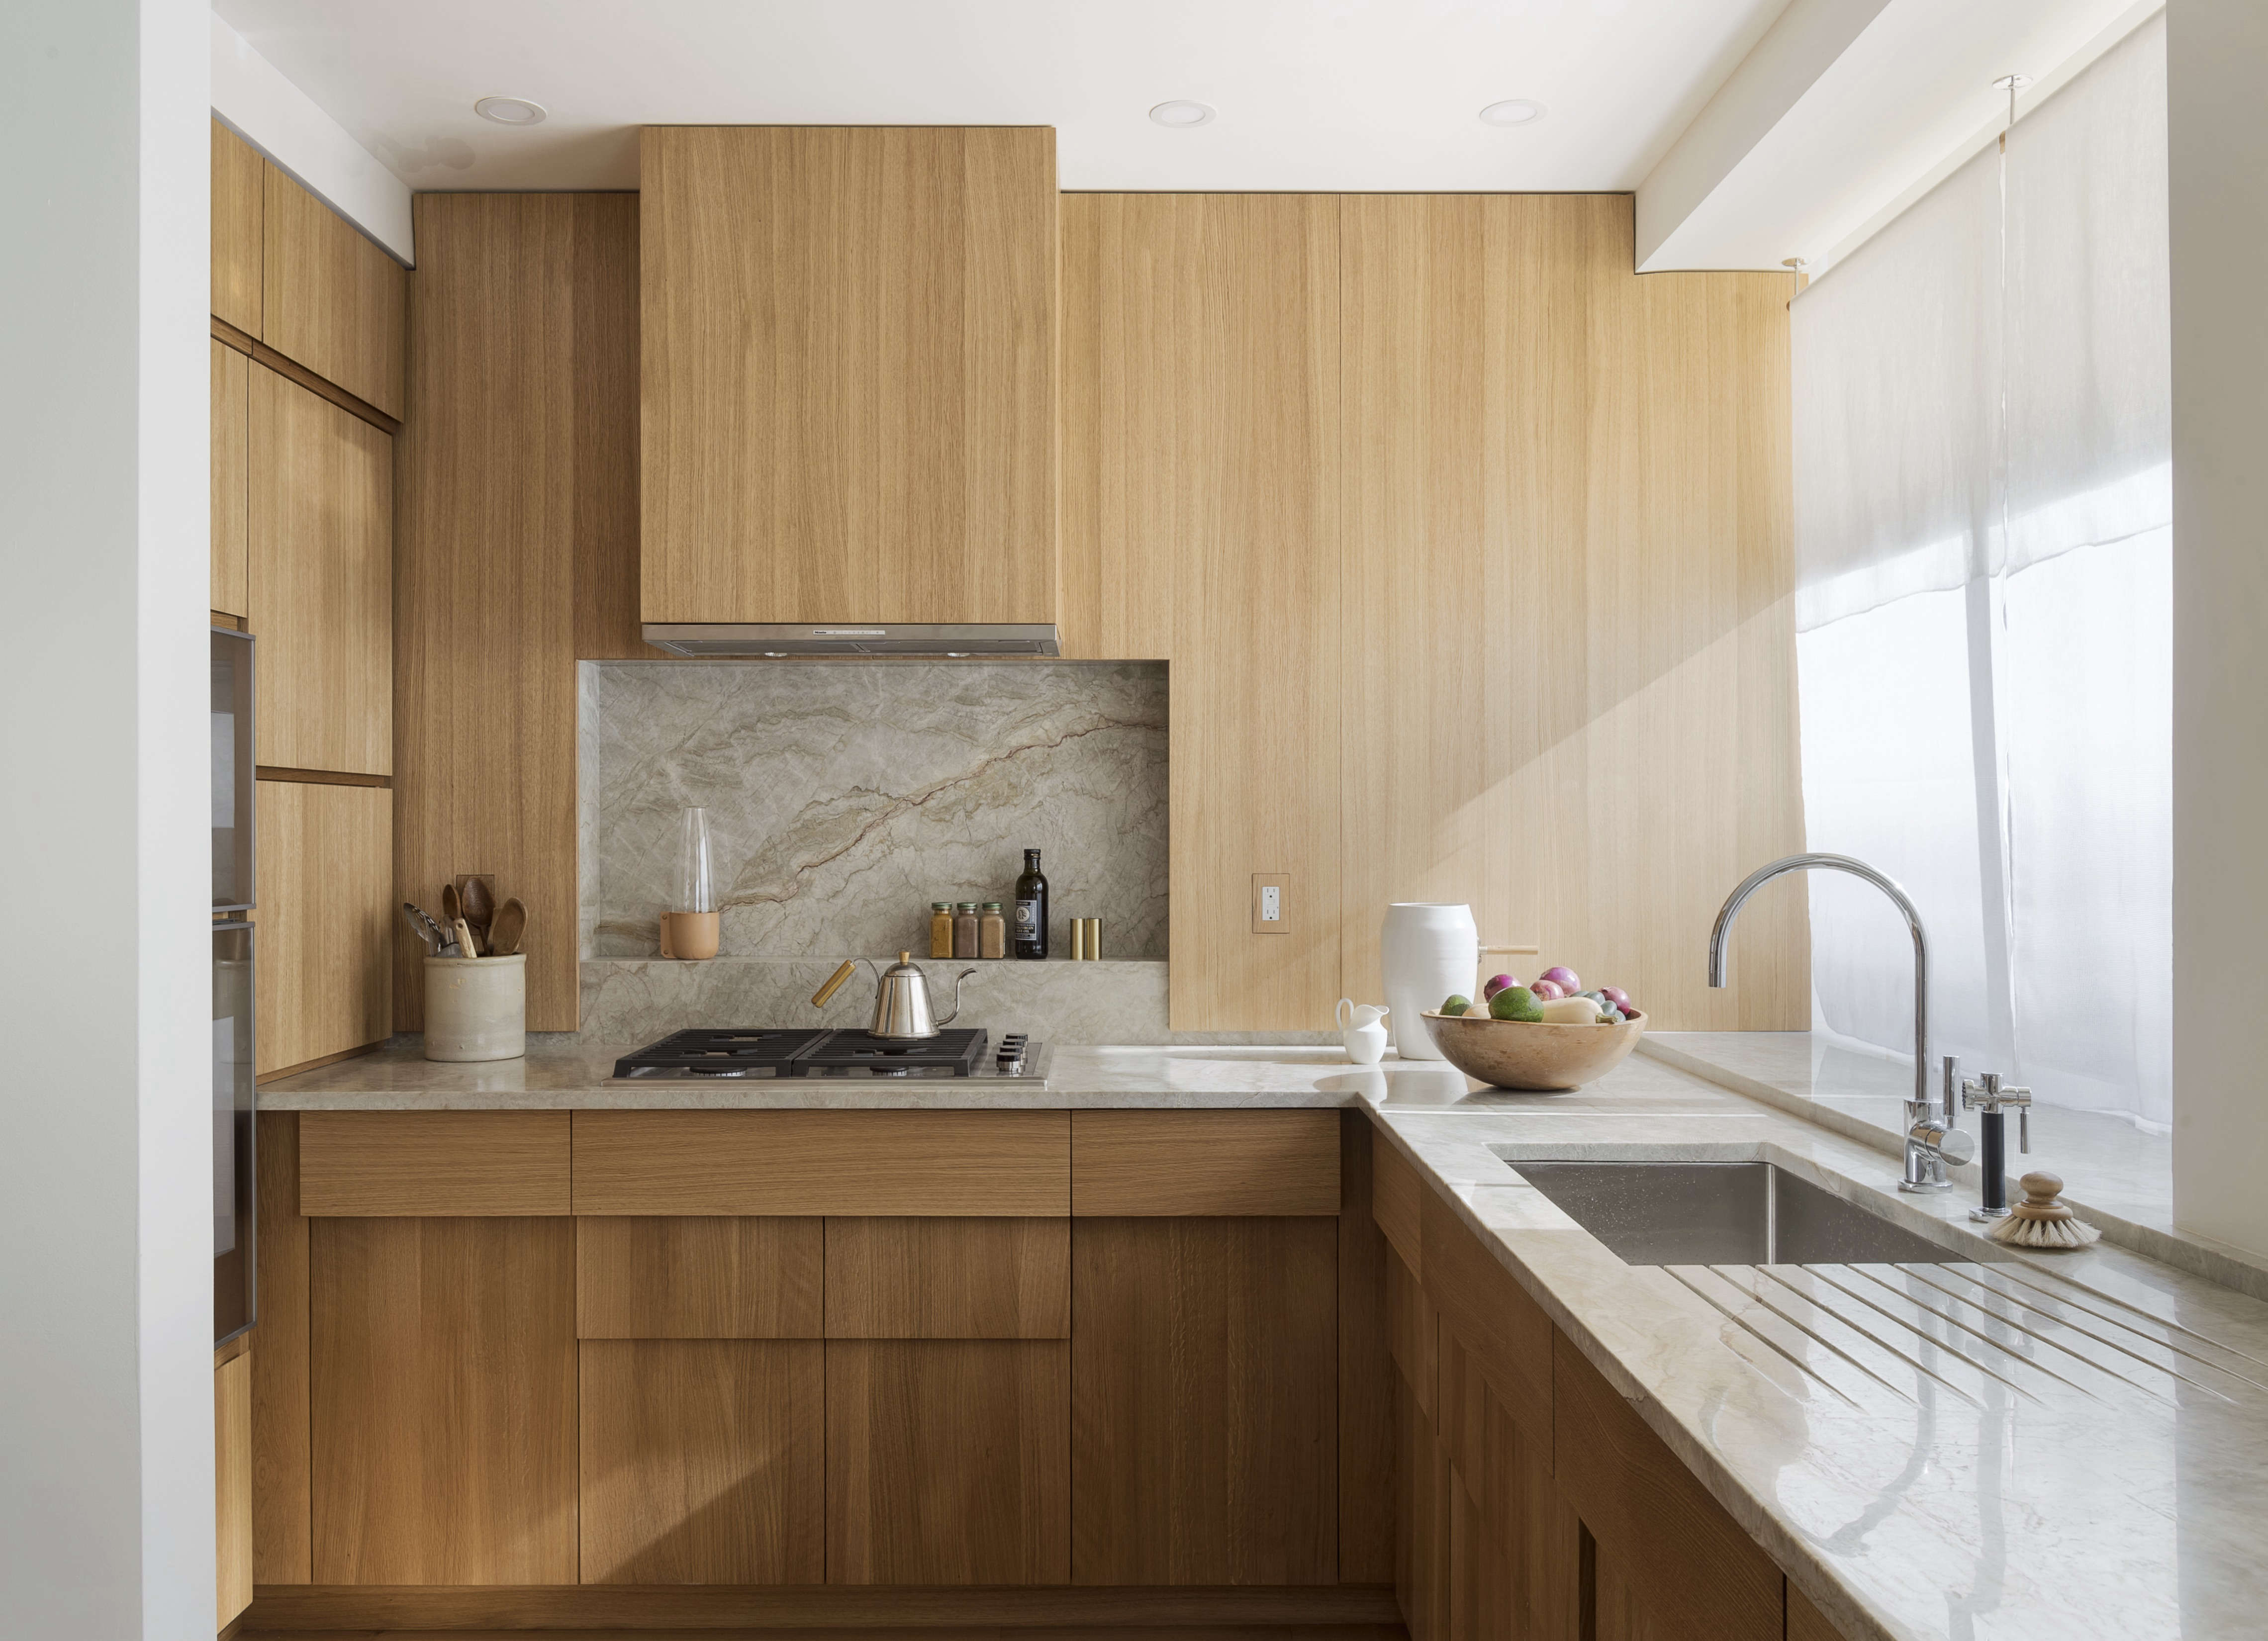 Stepped Oak Cabinets In A Compact Kitchen Remodel In NYC By Workstead  Design, Matthew Williams